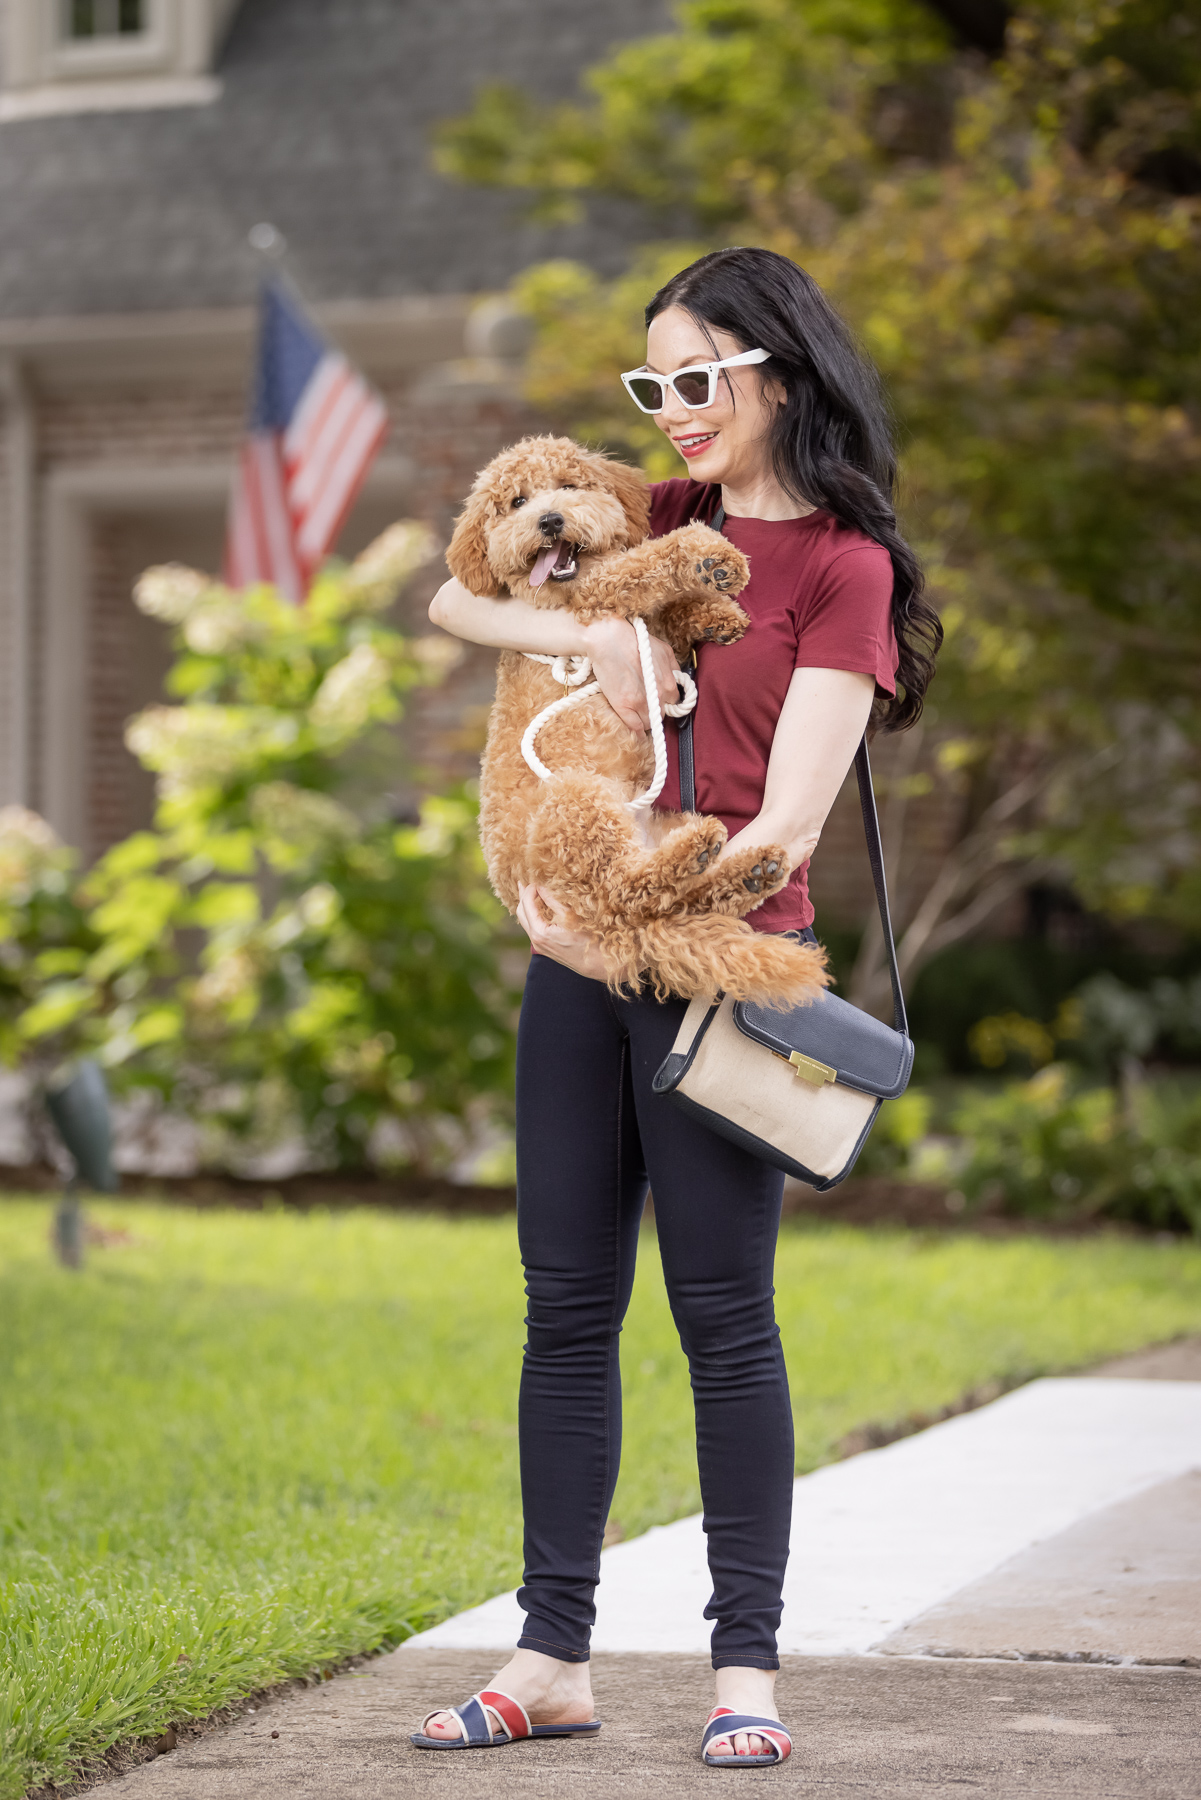 Mott & Bow Jeans and Tee Shirt, Tommy Hilfiger Crossbody Bag, J. Crew Sandals, Italic Cateye Sunglasses, Mini Goldendoodle puppy, Foggy Dog Bowtie, Preppy Style, Dallas Fashion Blogger | Mott and Bow Jeans by popular Dallas fashion blog, Pretty Little Shoppers: image of a woman wearing a crimson t-shirt, Mott and Bow Jeans, blue and red strap slide sandals, and black and tan crossbody bag while standing outside and holding her doodle breed dog.